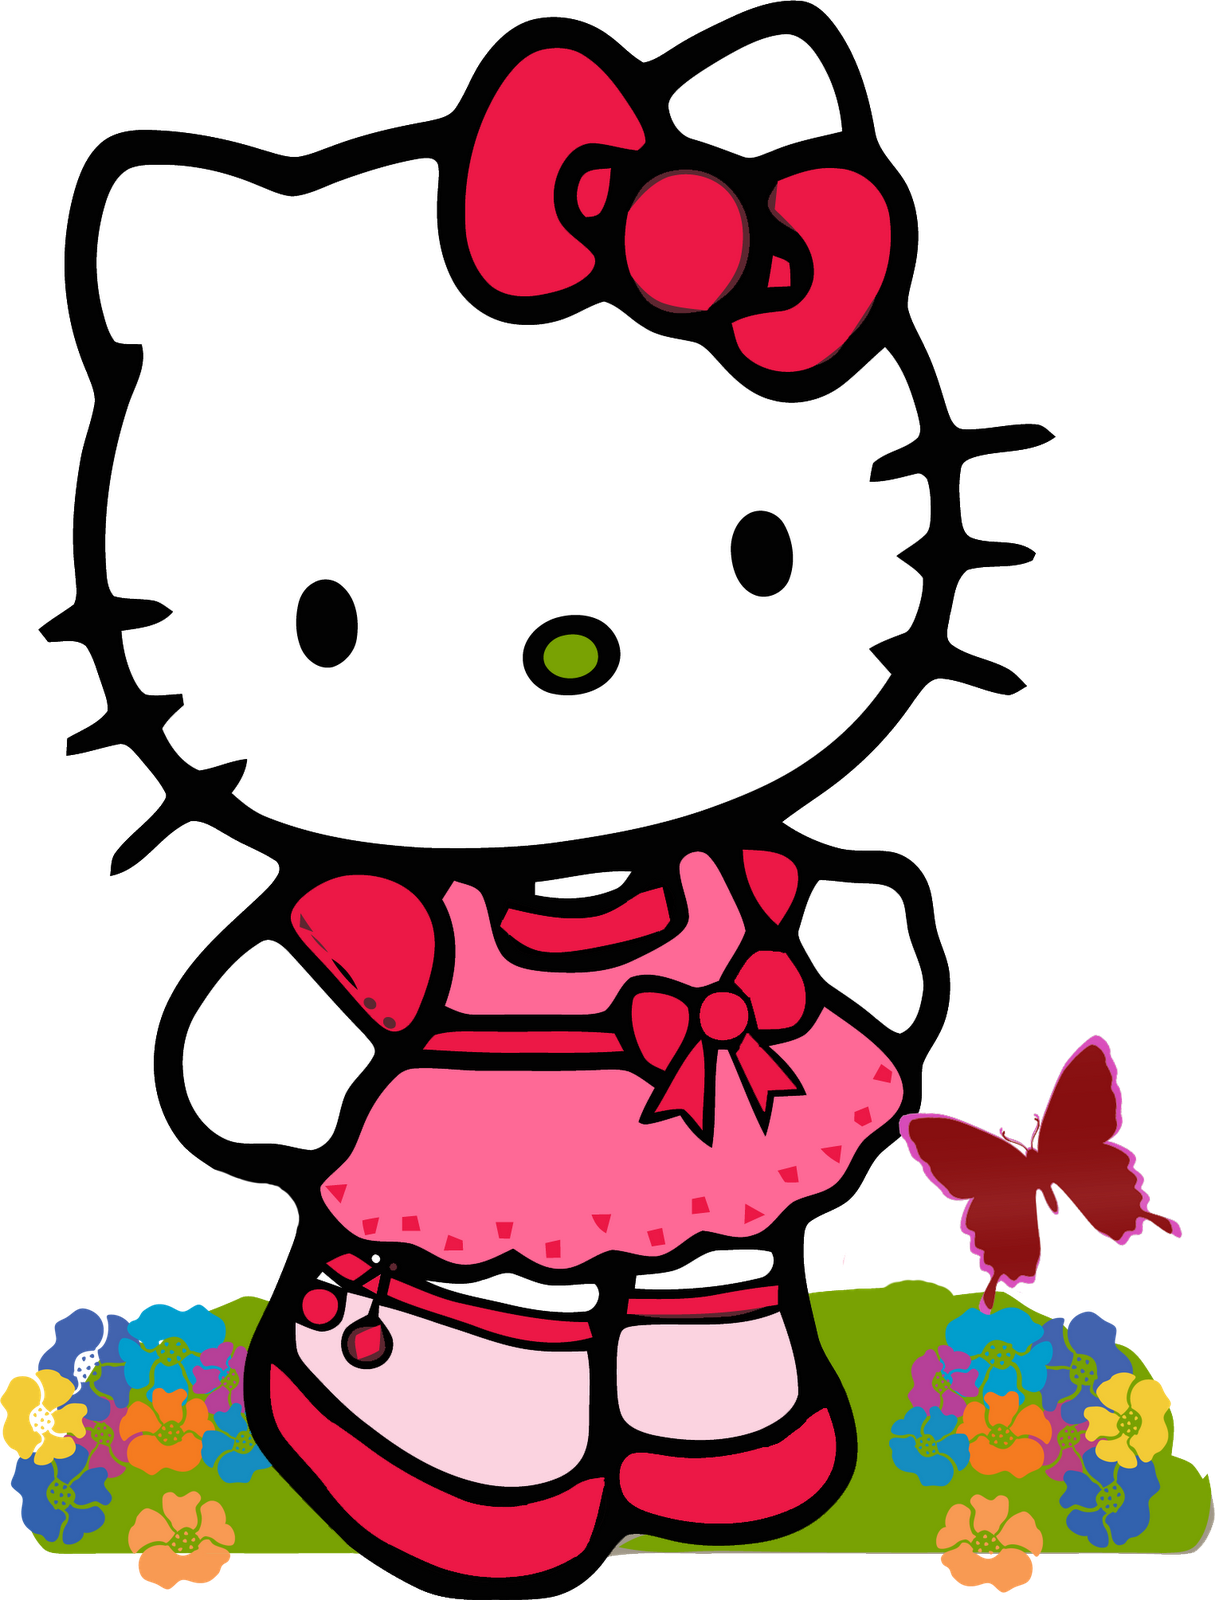 ImagesList.com: Hello Kitty Images, Part 3